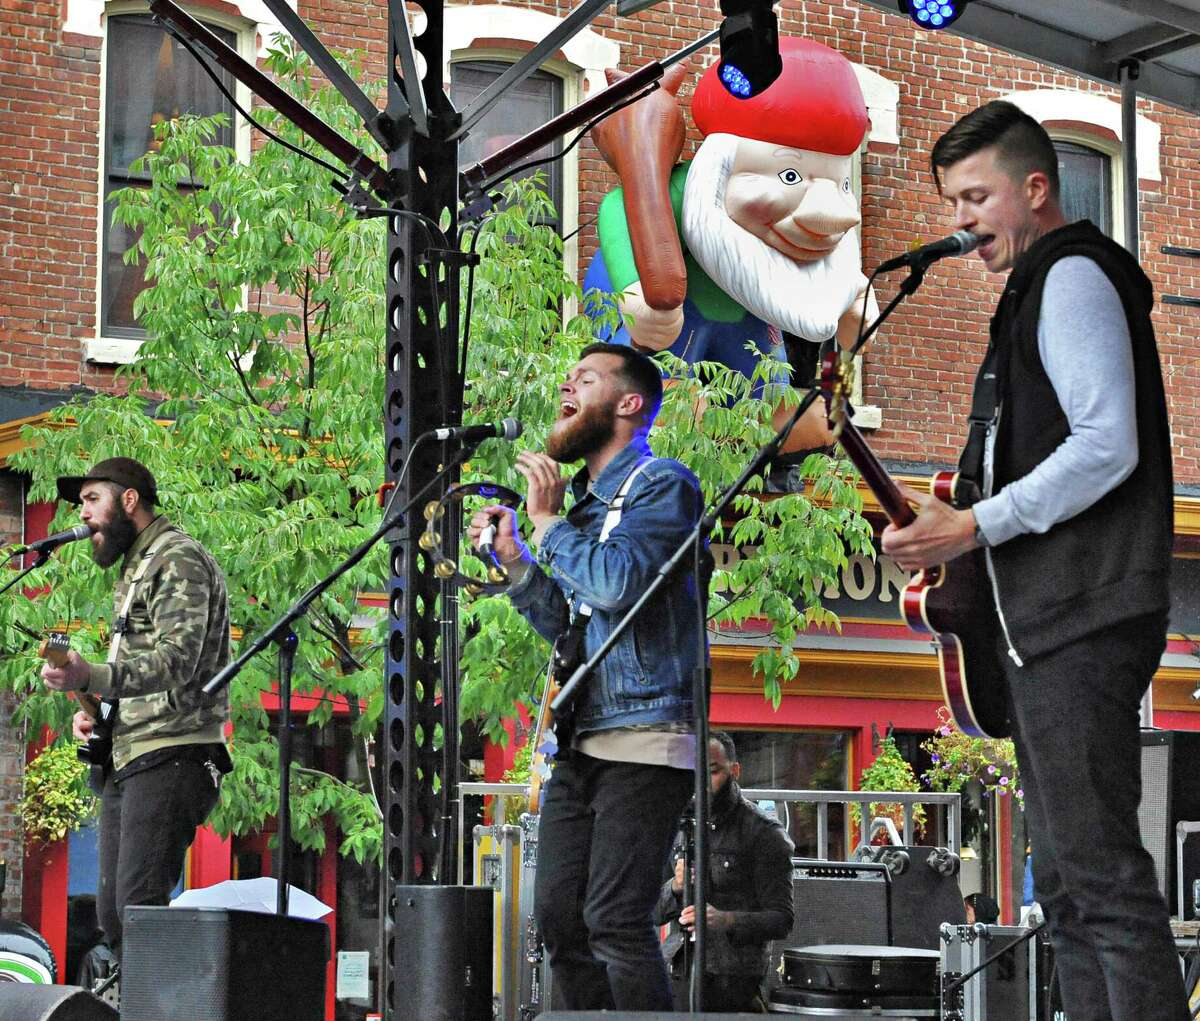 The Northern Faces perform at the 5th annual Pearlpalooza Saturday Sept. 13, 2014, in Albany, NY. (John Carl D'Annibale / Times Union)